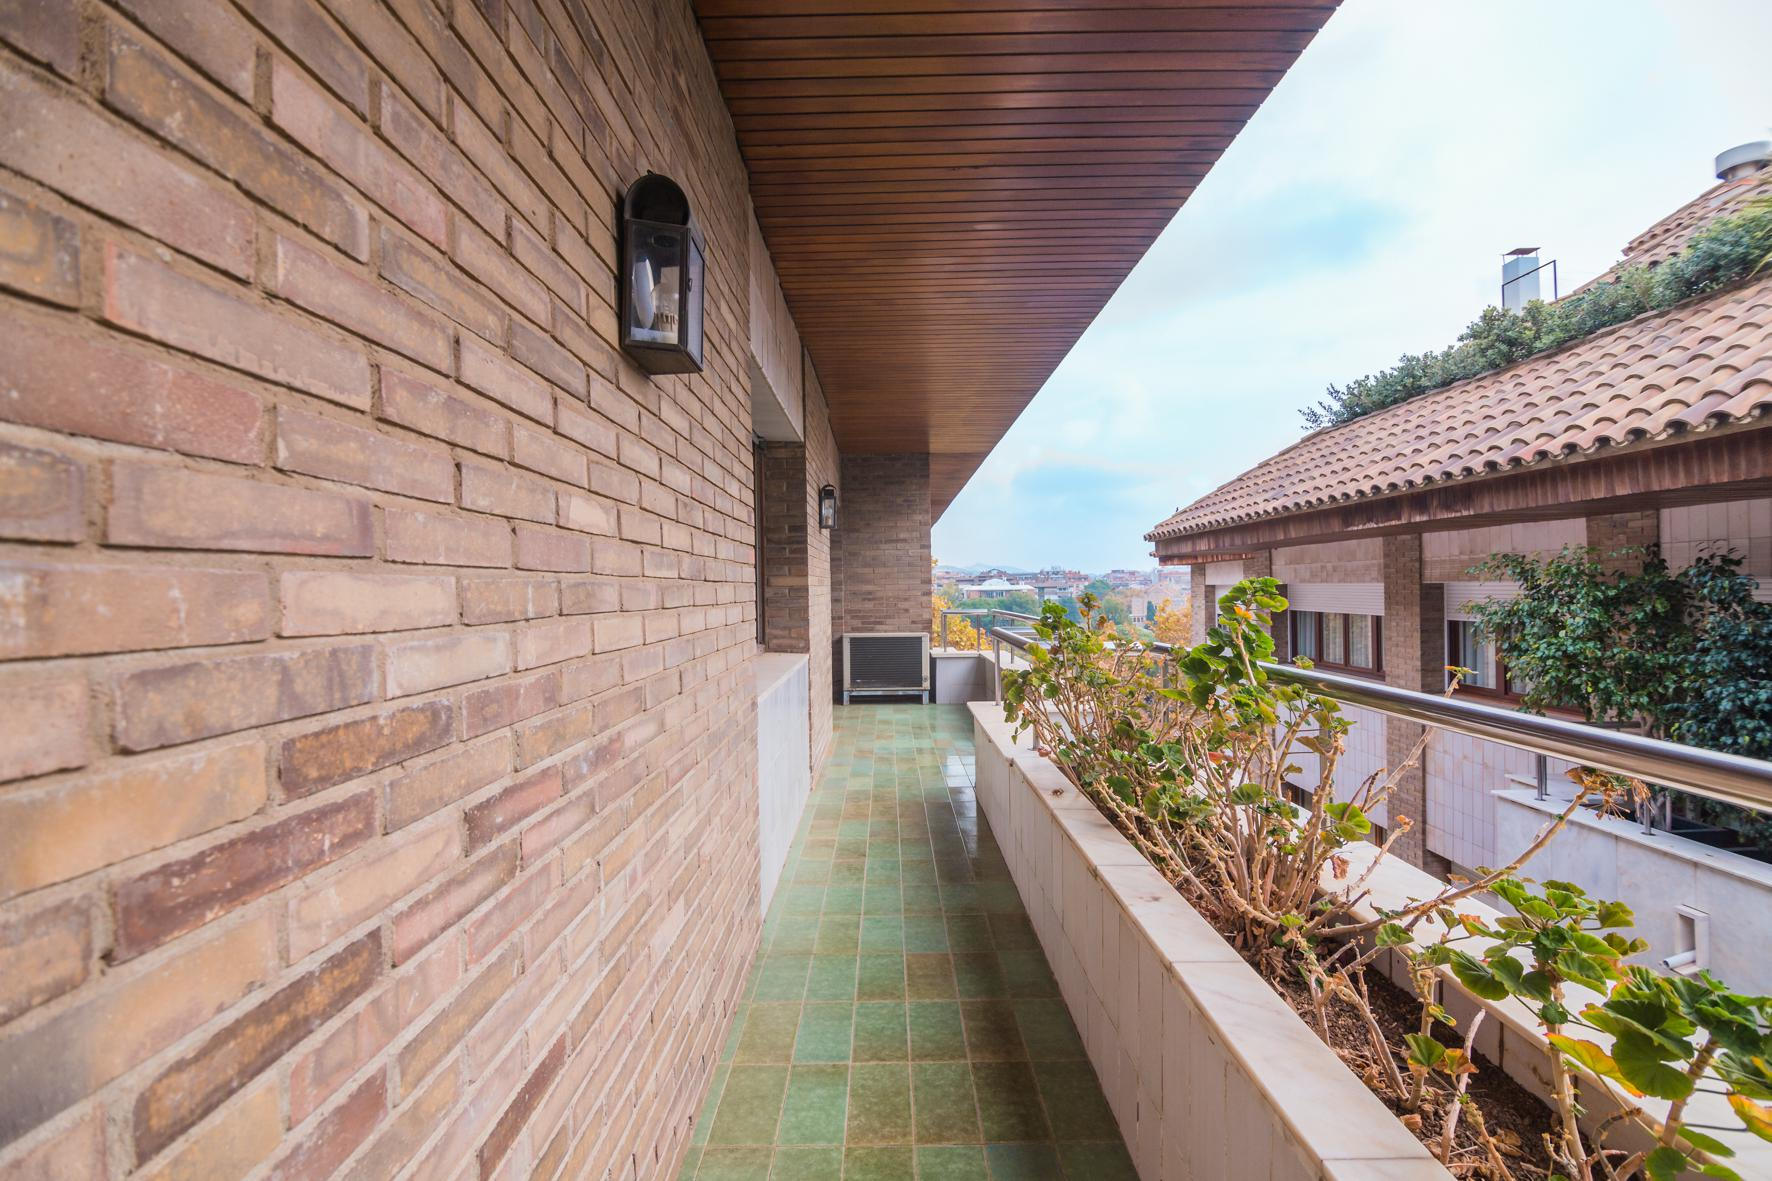 244103 Penthouse for sale in Les Corts, Pedralbes 12